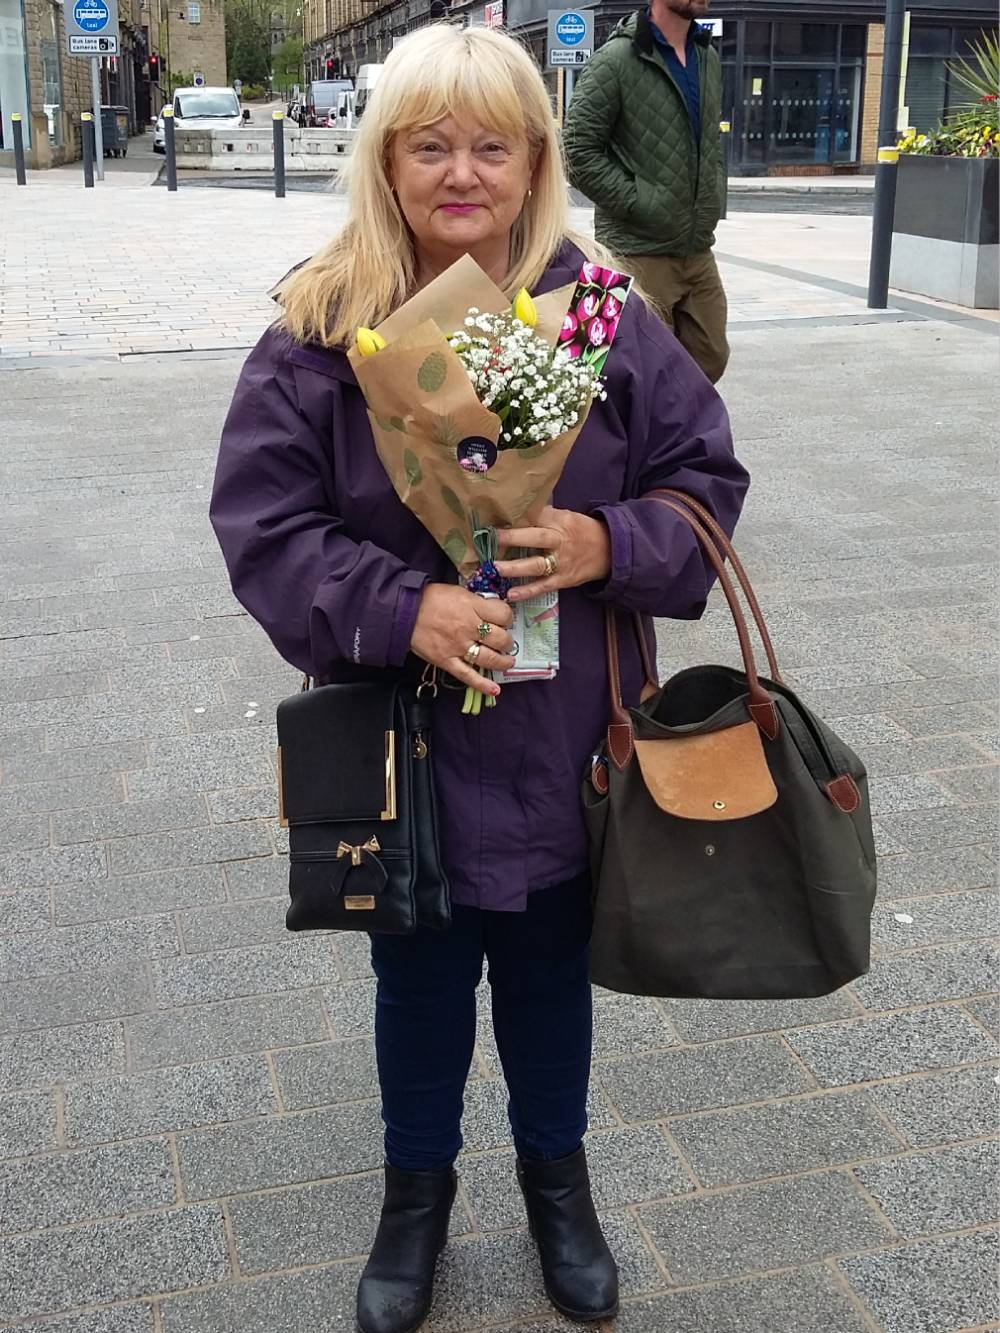 Flowers-were-handed-out-as-part-of-the-campaign